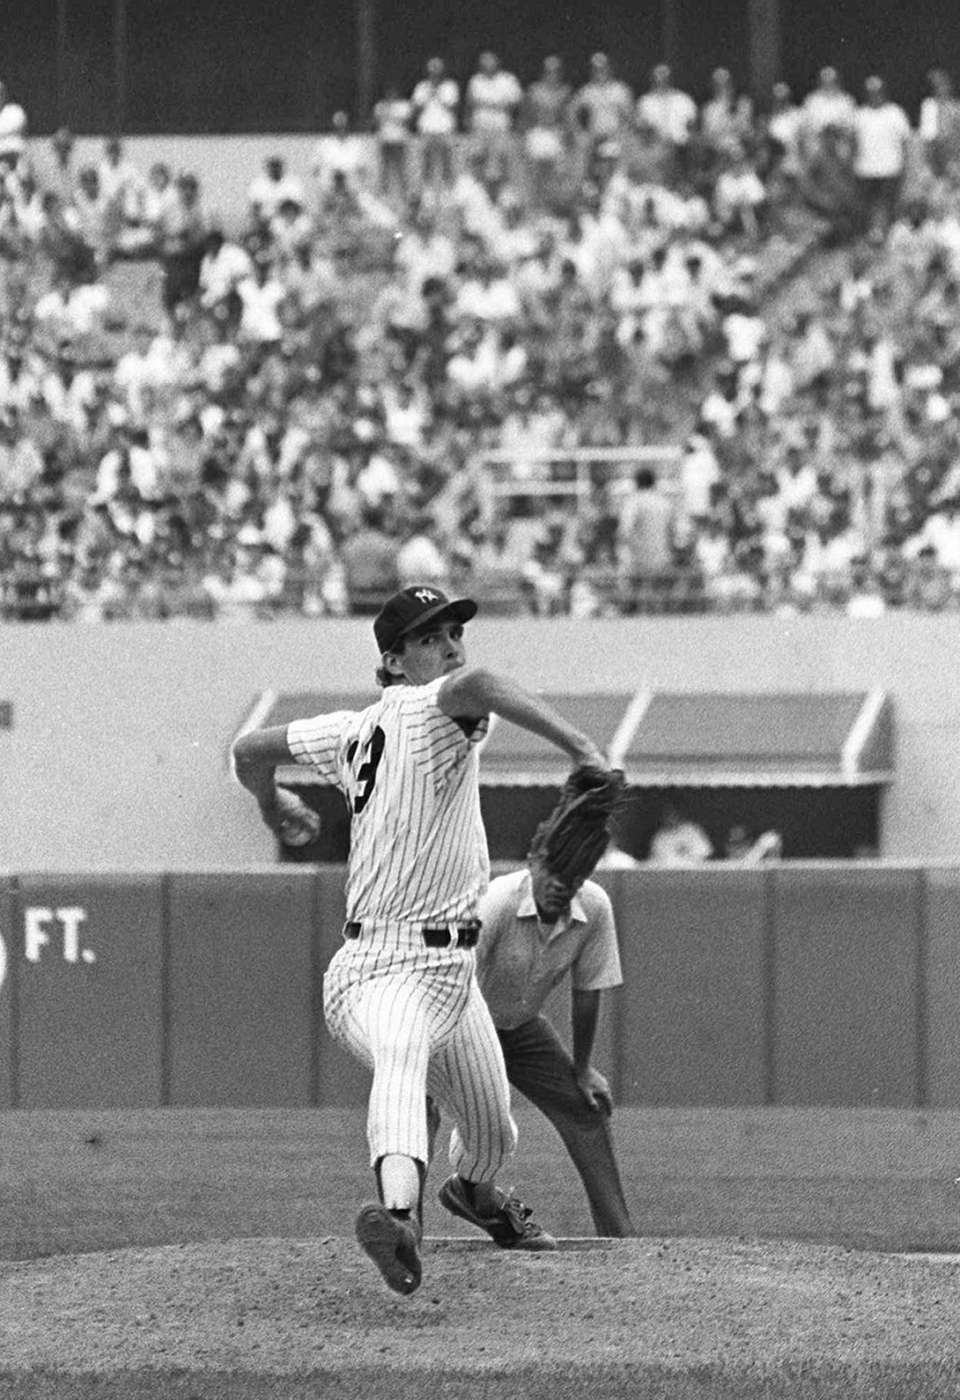 New York Yankees lefthander Dave Righetti pitches the